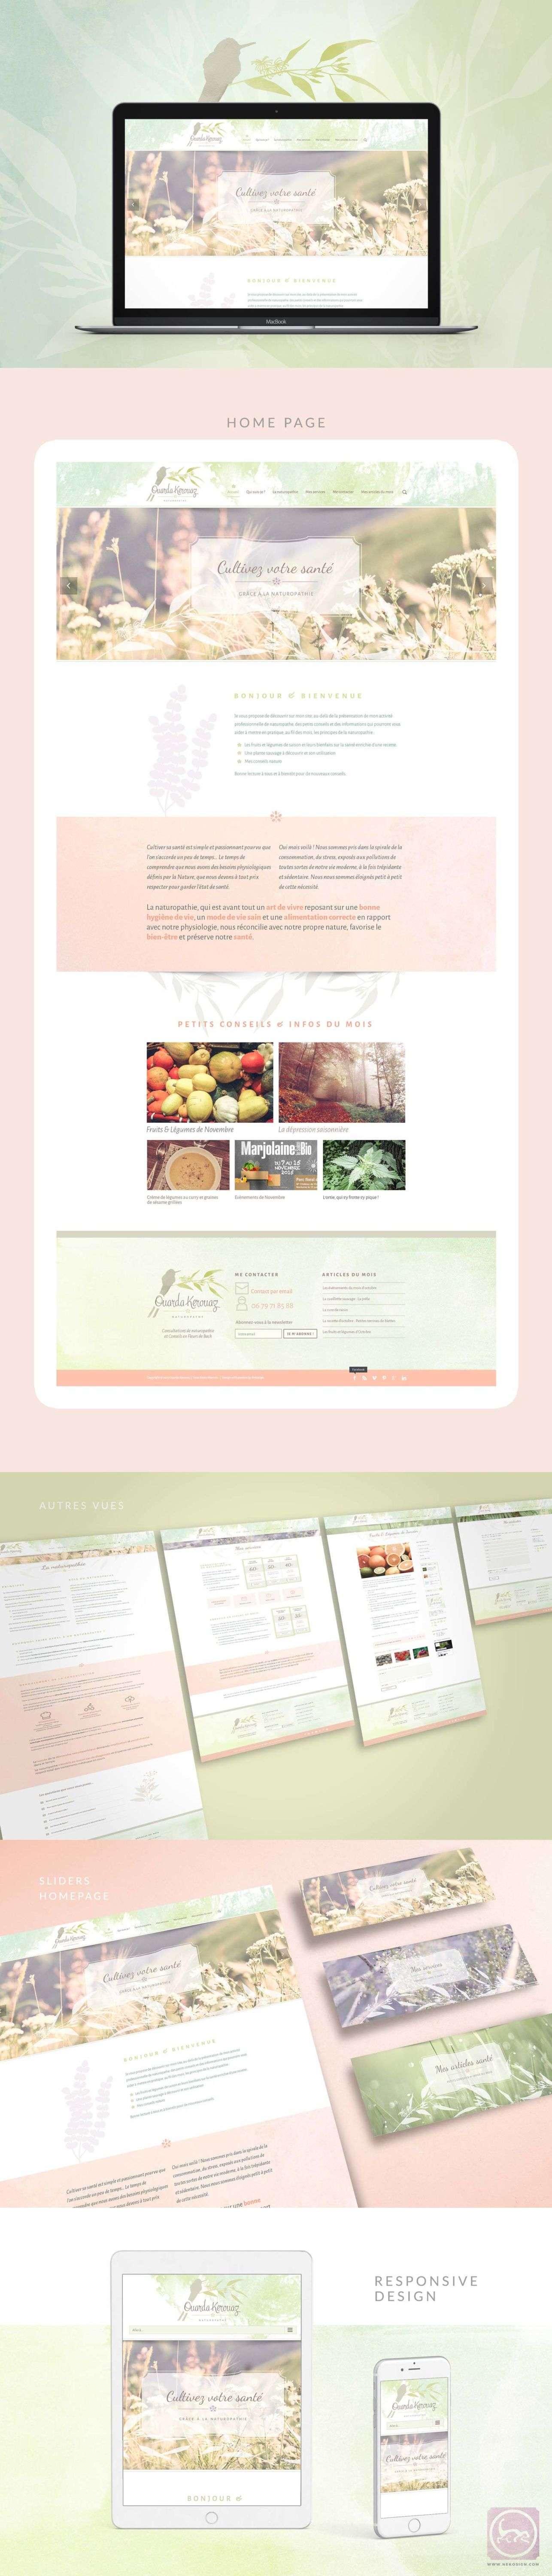 Ouarda kerouaz Naturopathe Website preview